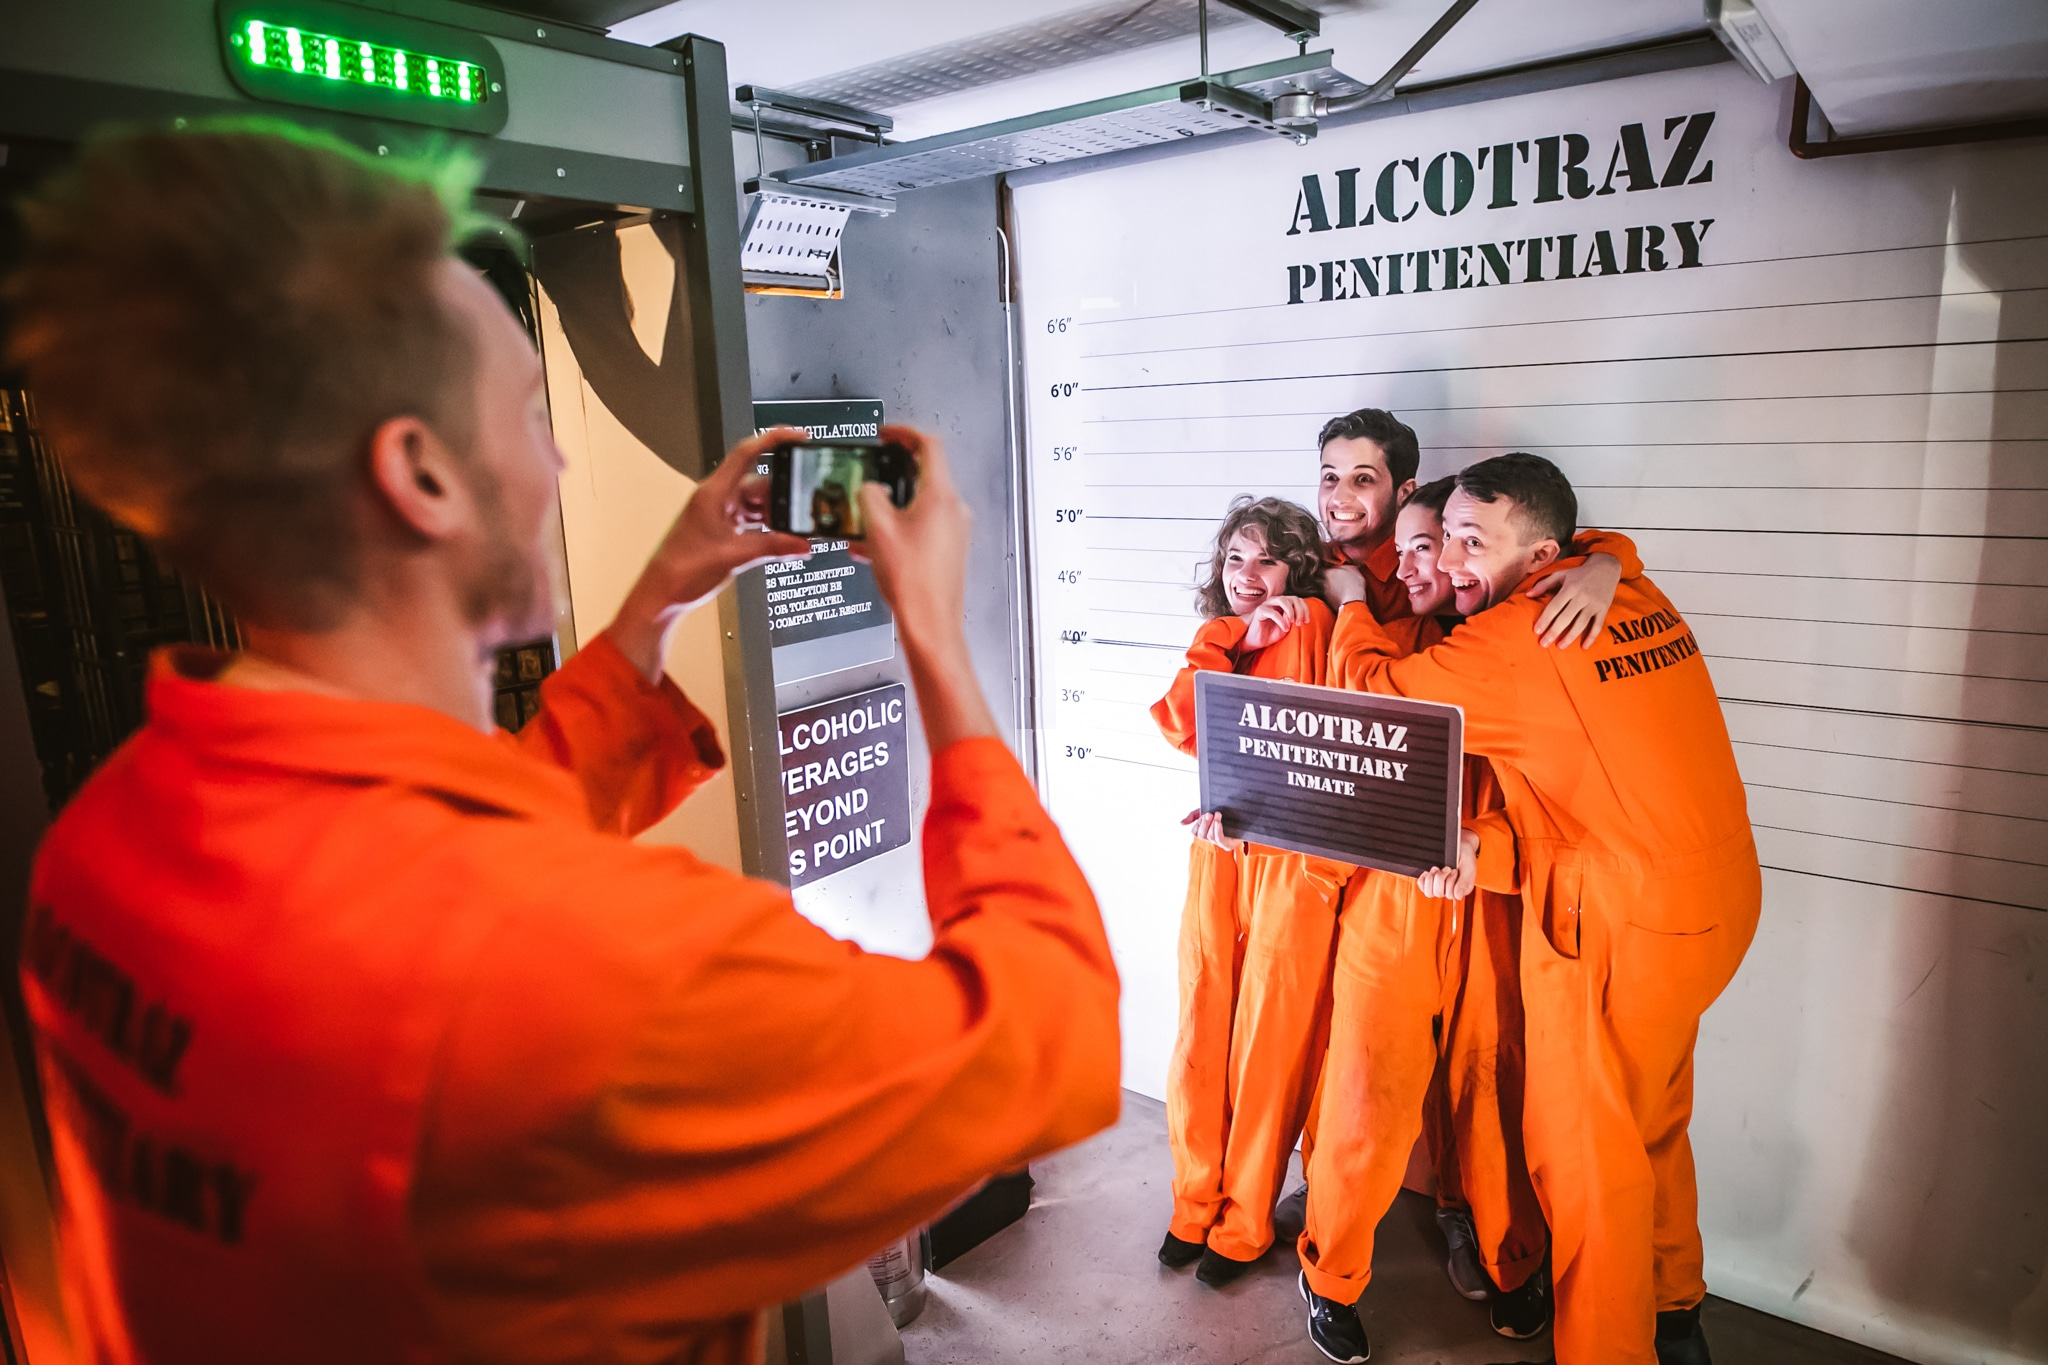 Four people in orange prison jumpsuit costumes post in front of a Alcotraz bar London sign designed like the police line up parades.